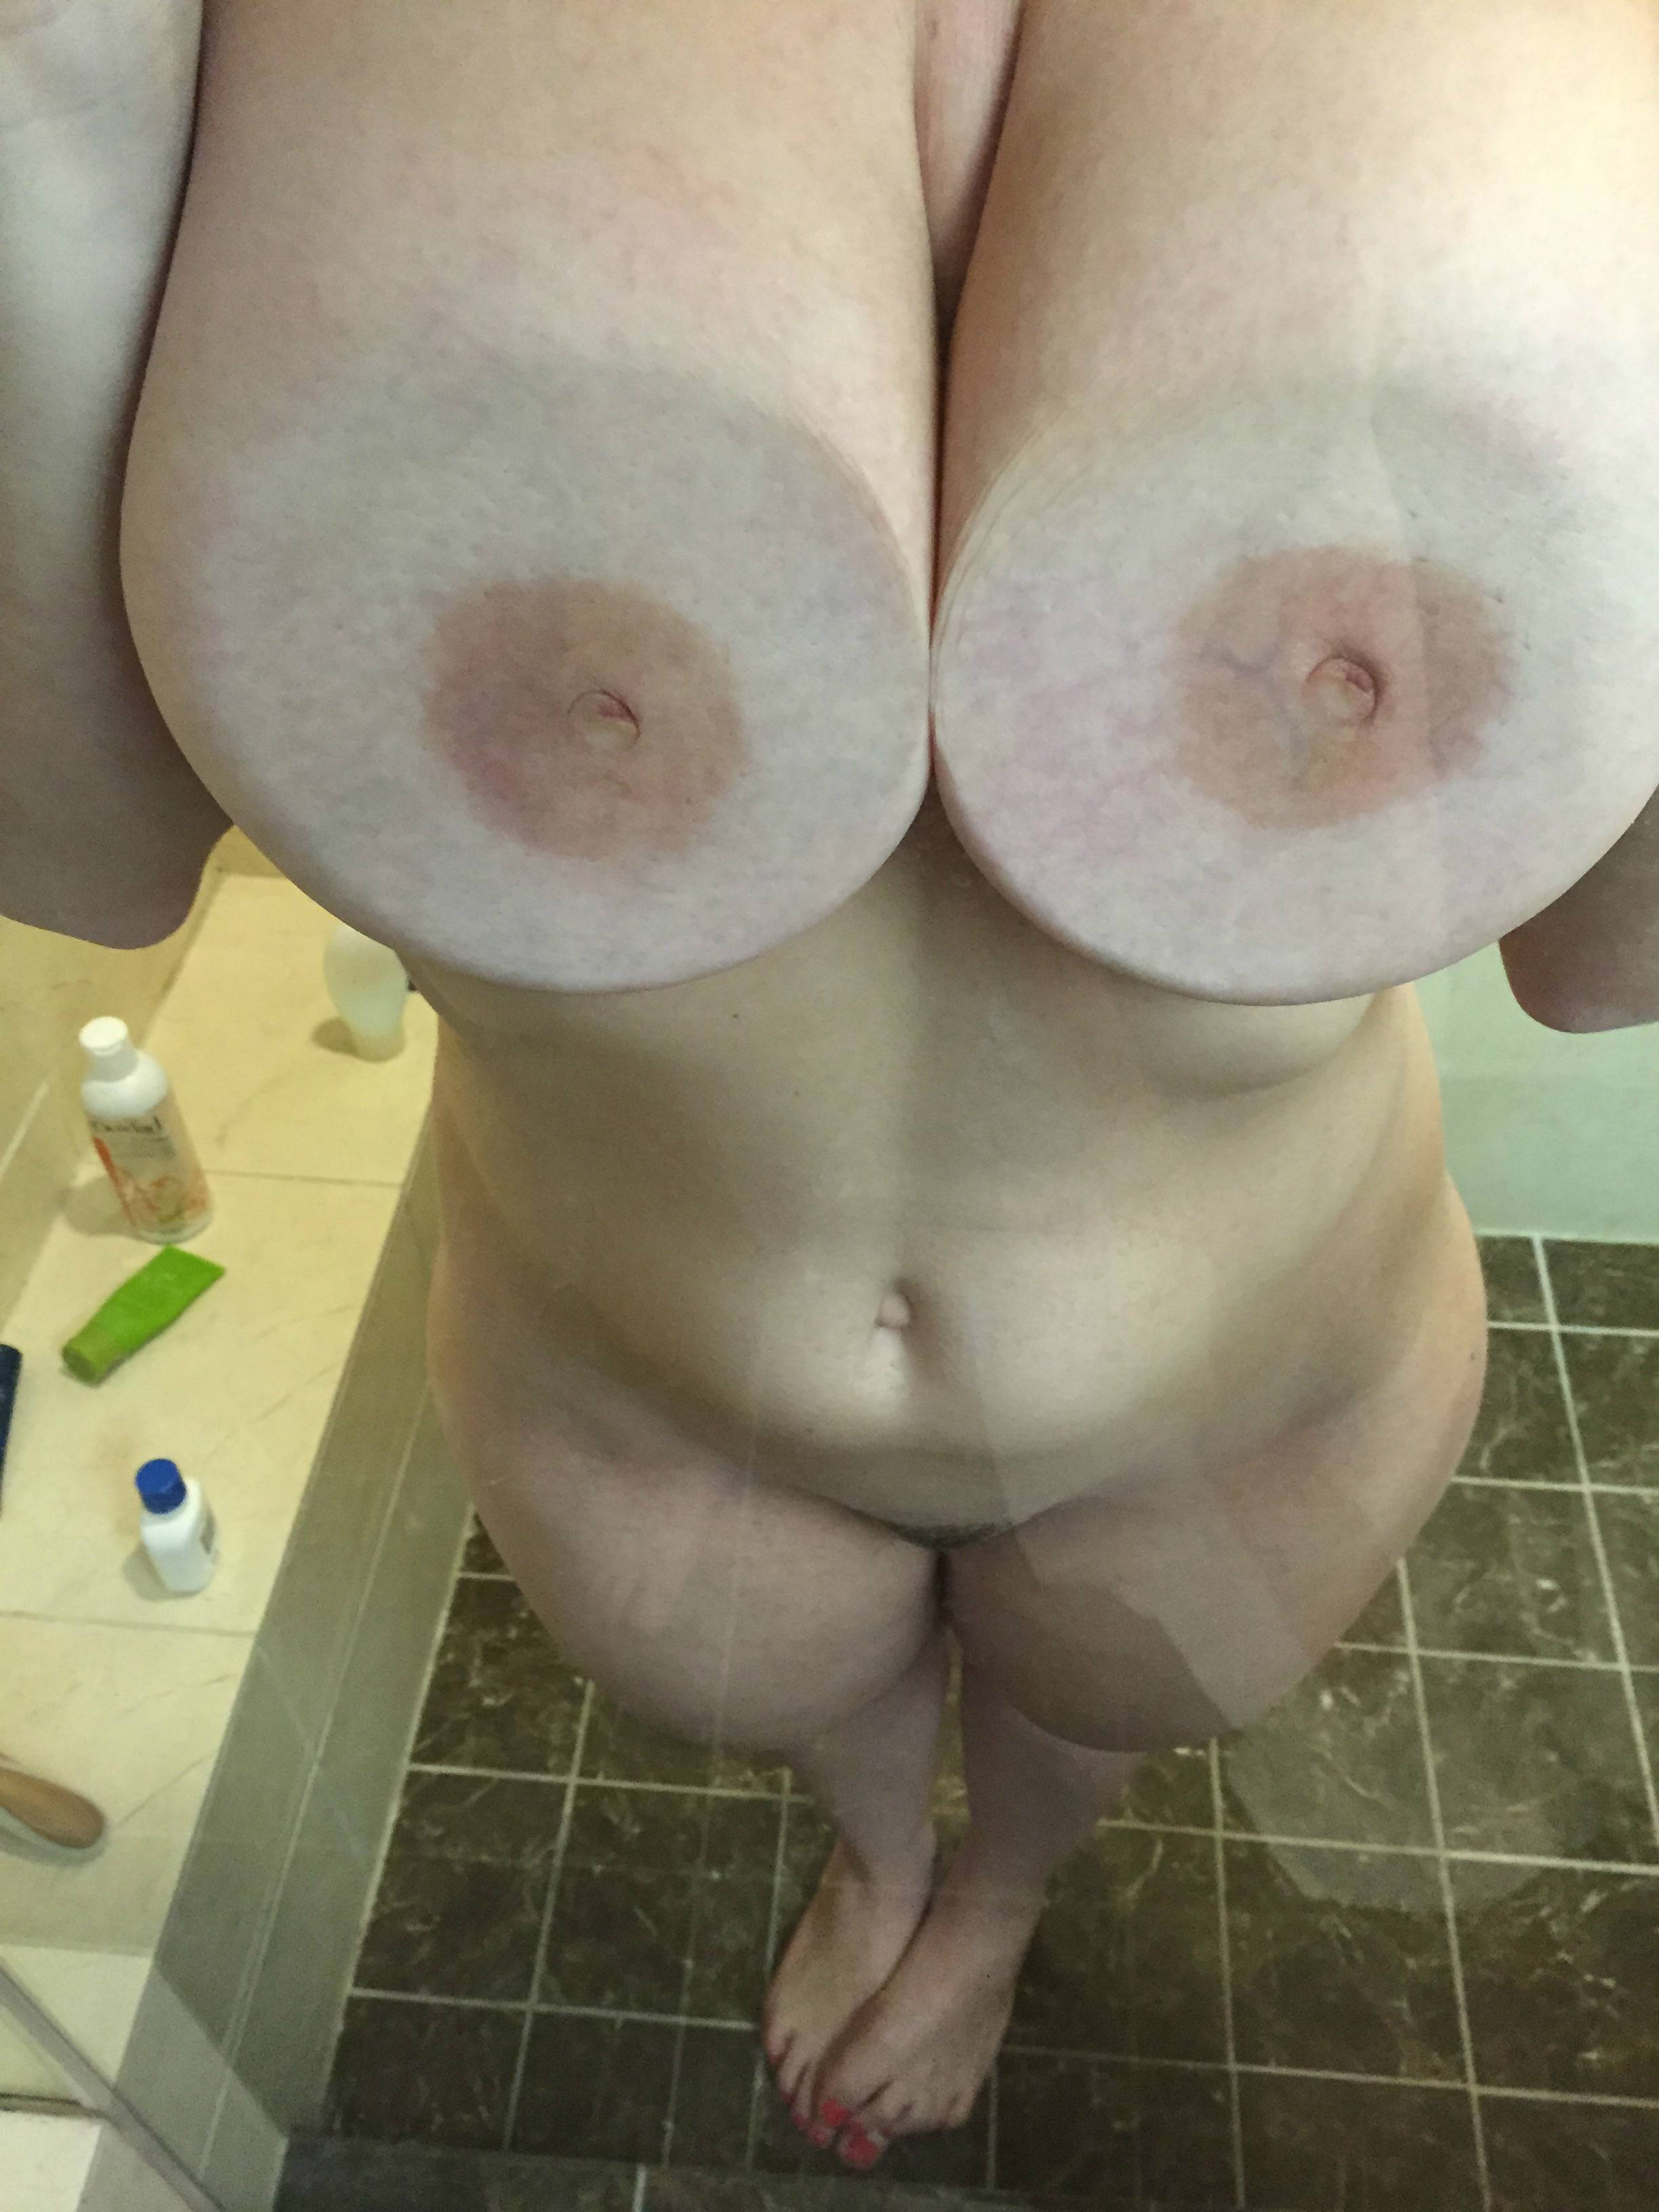 Guard reccomend tits glass shower